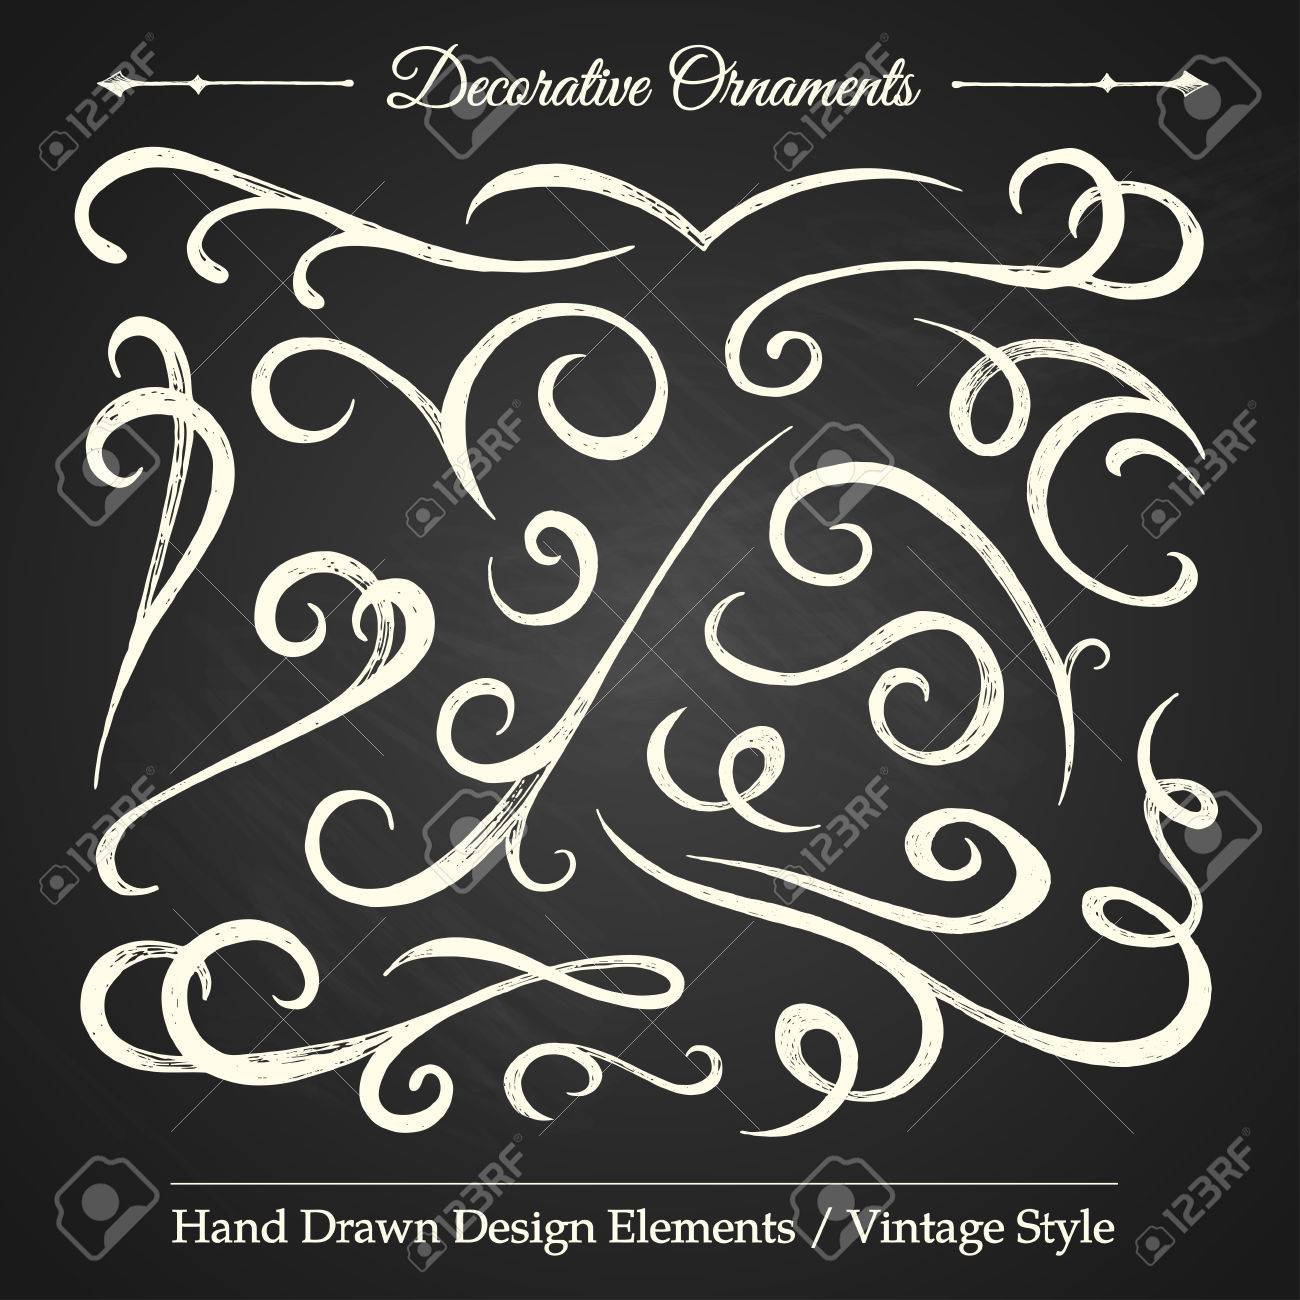 Vintage style ornaments - Decorative Ornaments Hand Drawn Design Elements Vintage Style On Chalkboard Stock Vector 26764403